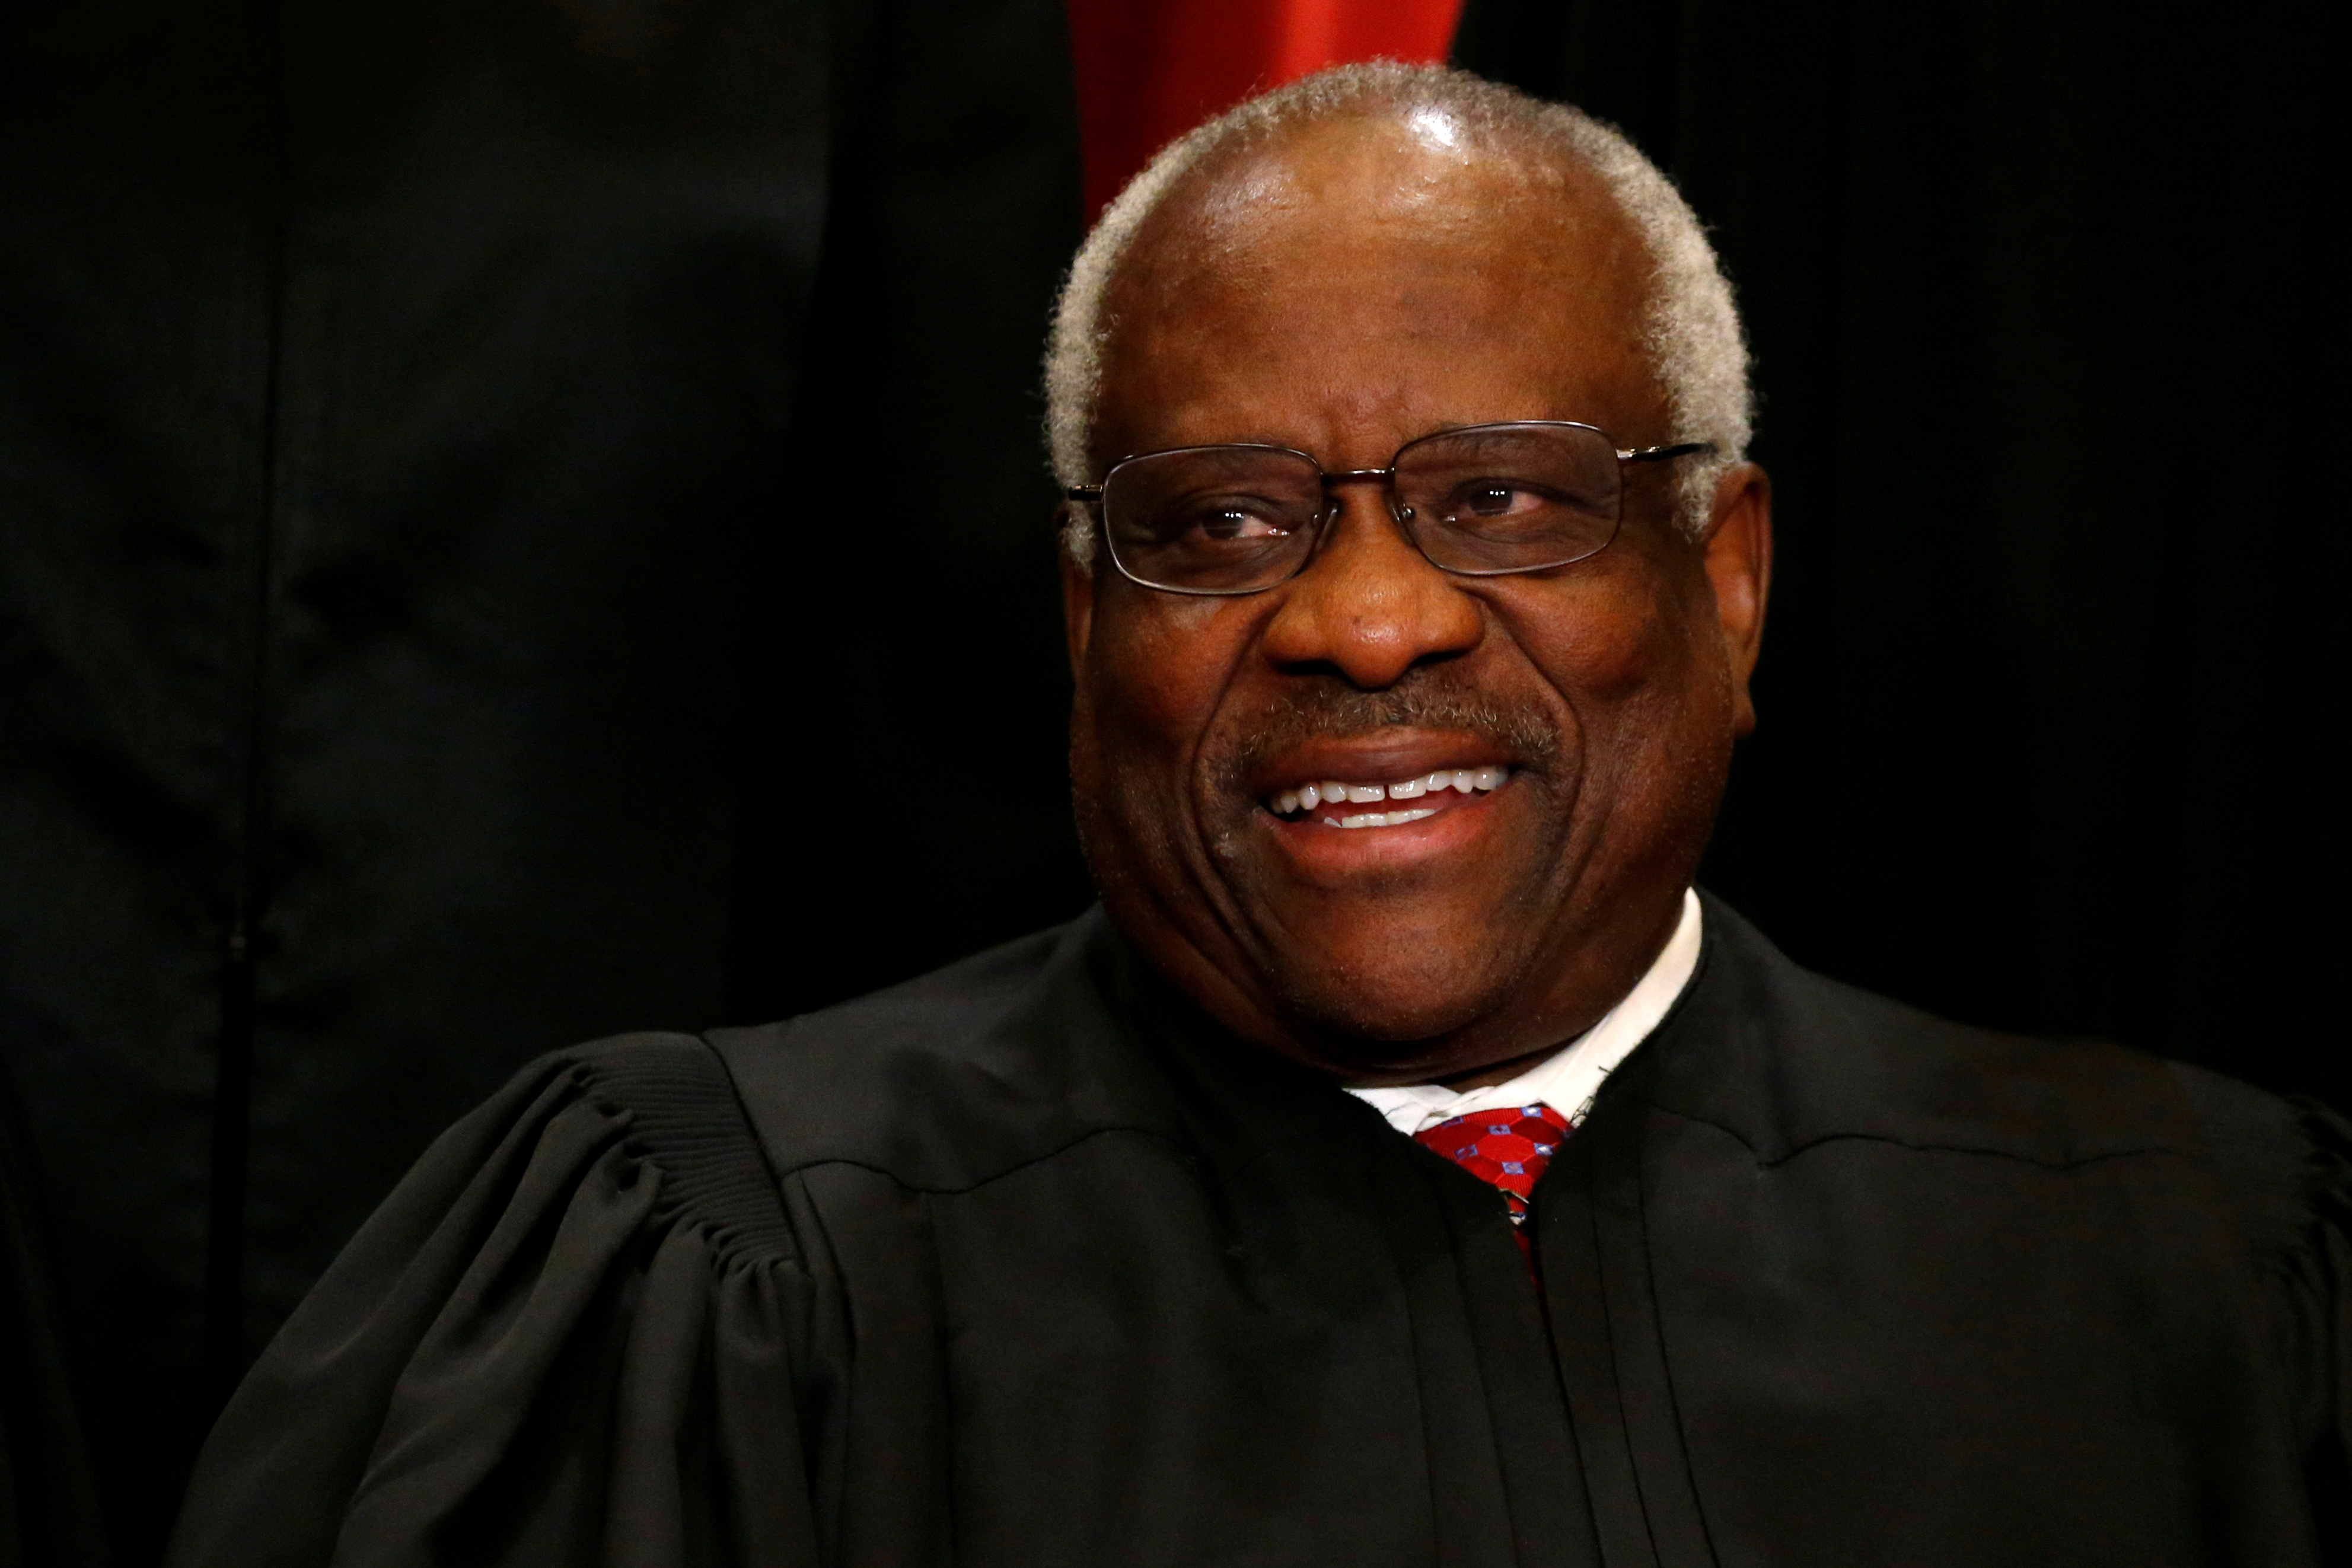 U.S. Supreme Court Justice Clarence Thomas participates in taking a new